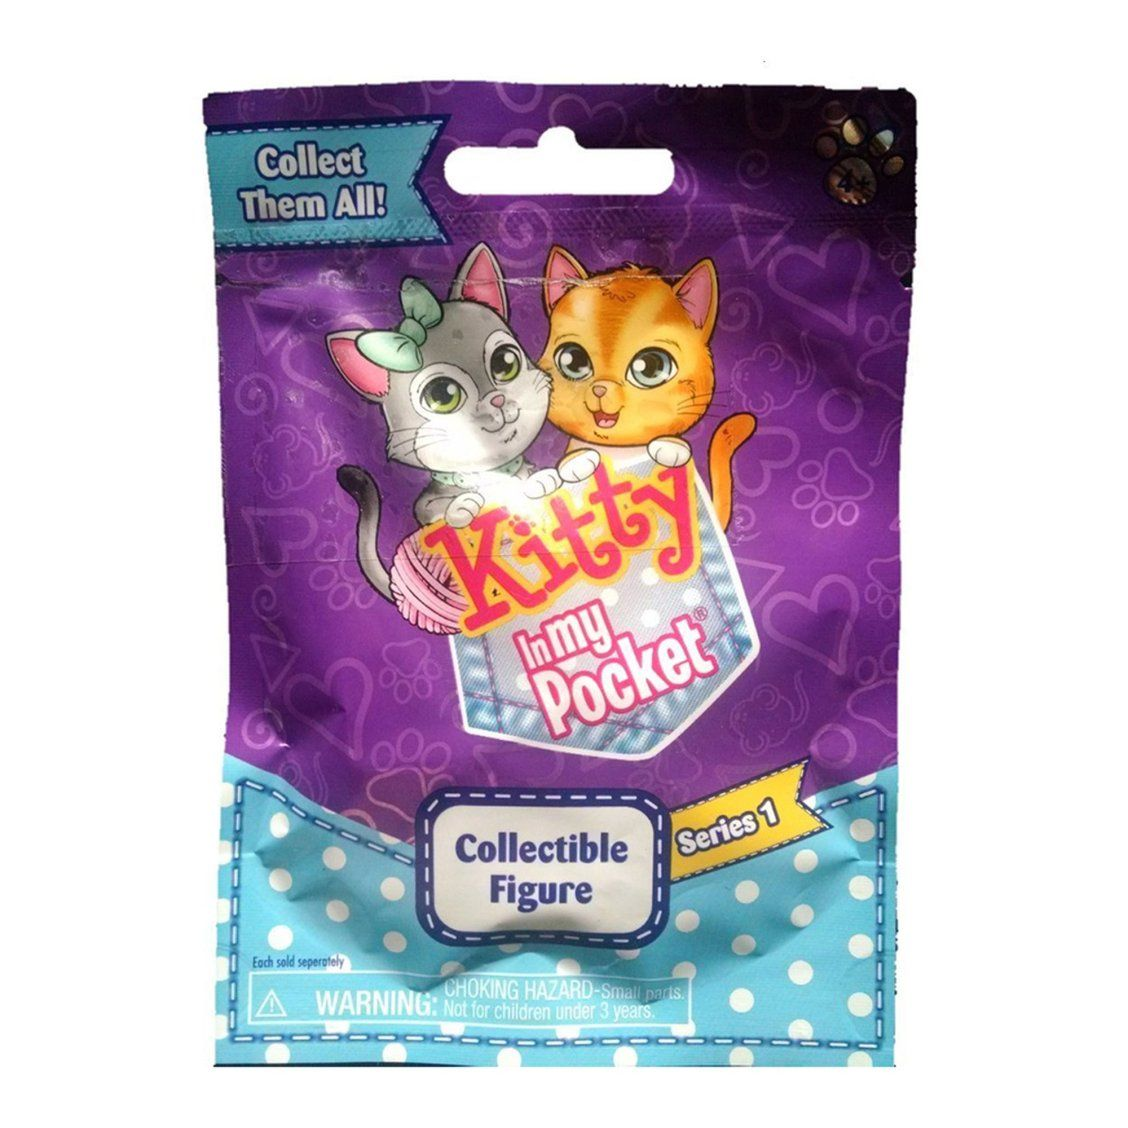 Kitty In My Pocket Series 1 Blind Bag Collect Them All One Cute Fuzzy Kitten In Each Bag Christmas Toys For Girls Baby Girl Toys Blind Bags